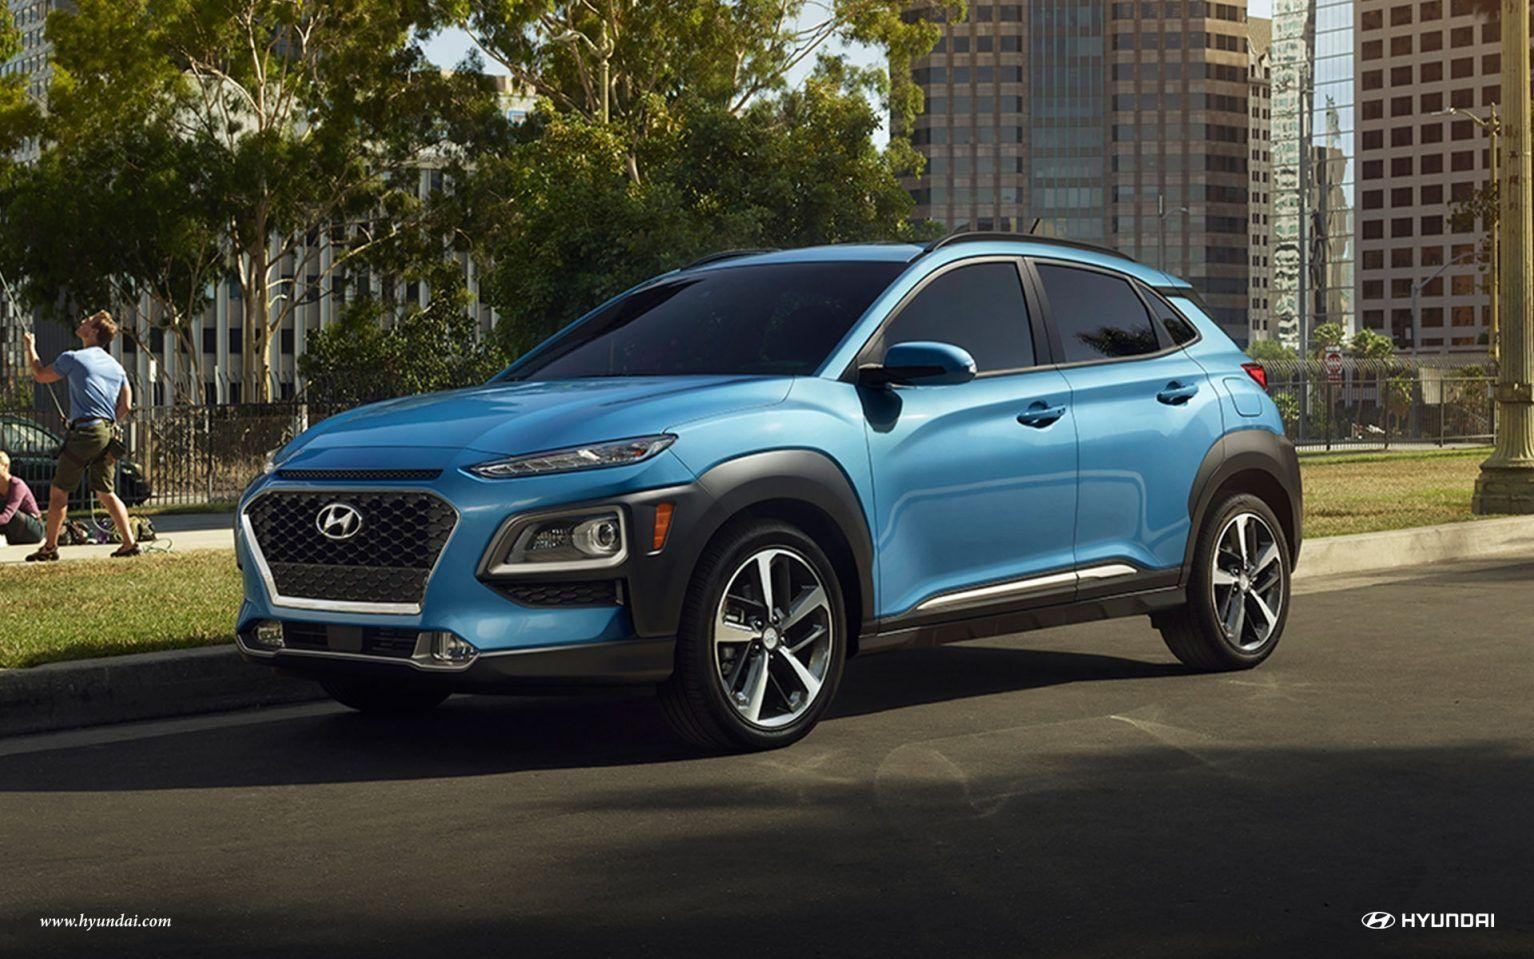 2019 Hyundai Kona EV Wallpapers